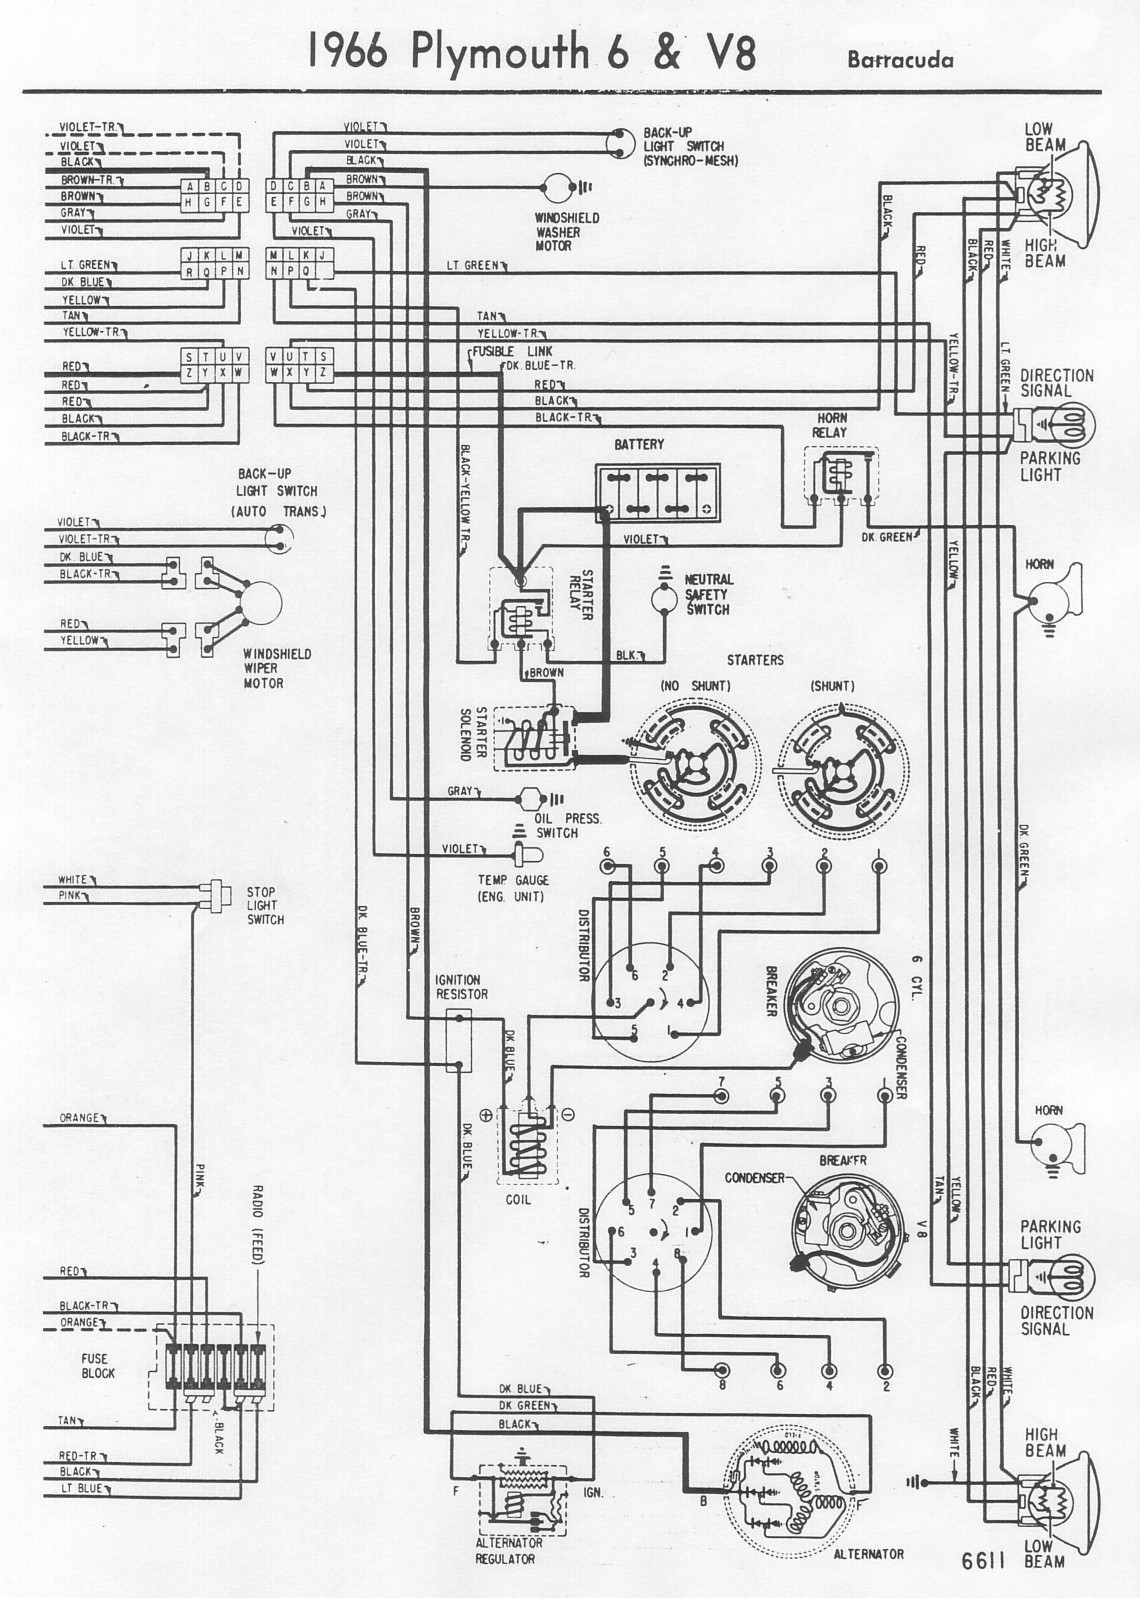 1964 Plymouth Barracuda Wiring Diagram Wiring Harness Wiring | basic on chevrolet valiant, 1966 dodge valiant, 1963 dodge valiant, chrysler valiant, pro touring valiant, 1971 dodge valiant, 1972 dodge valiant, 1965 dodge valiant, 1970 dodge valiant,